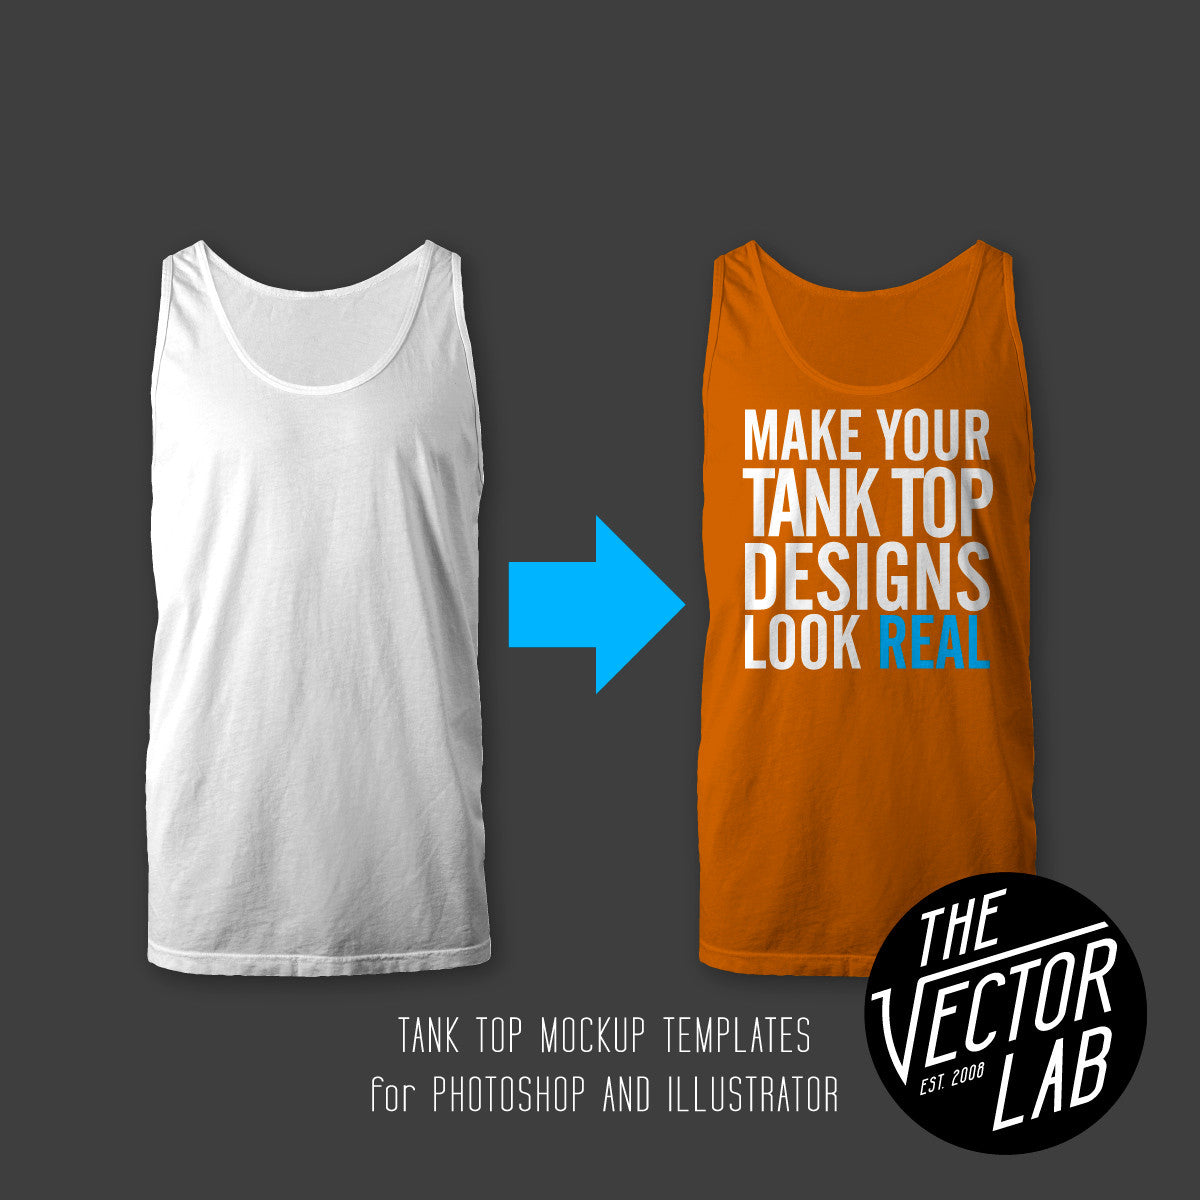 Men's Tank Top Mockup Templates - TheVectorLab